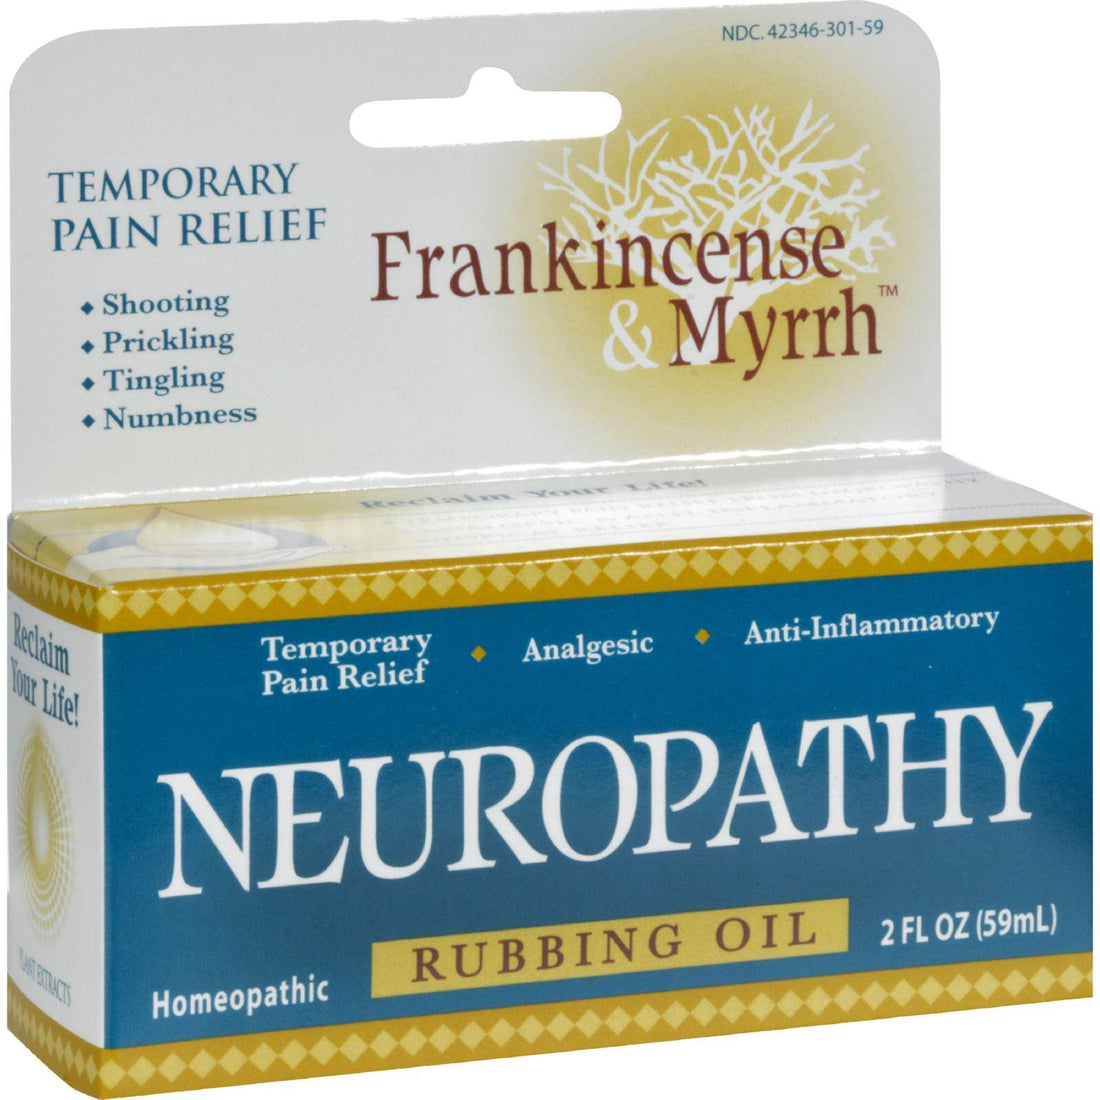 Mother Mantis: Frankincense And Myrrh Neuropathy Rubbing Oil - 2 Fl Oz Frankincense And Myrrh